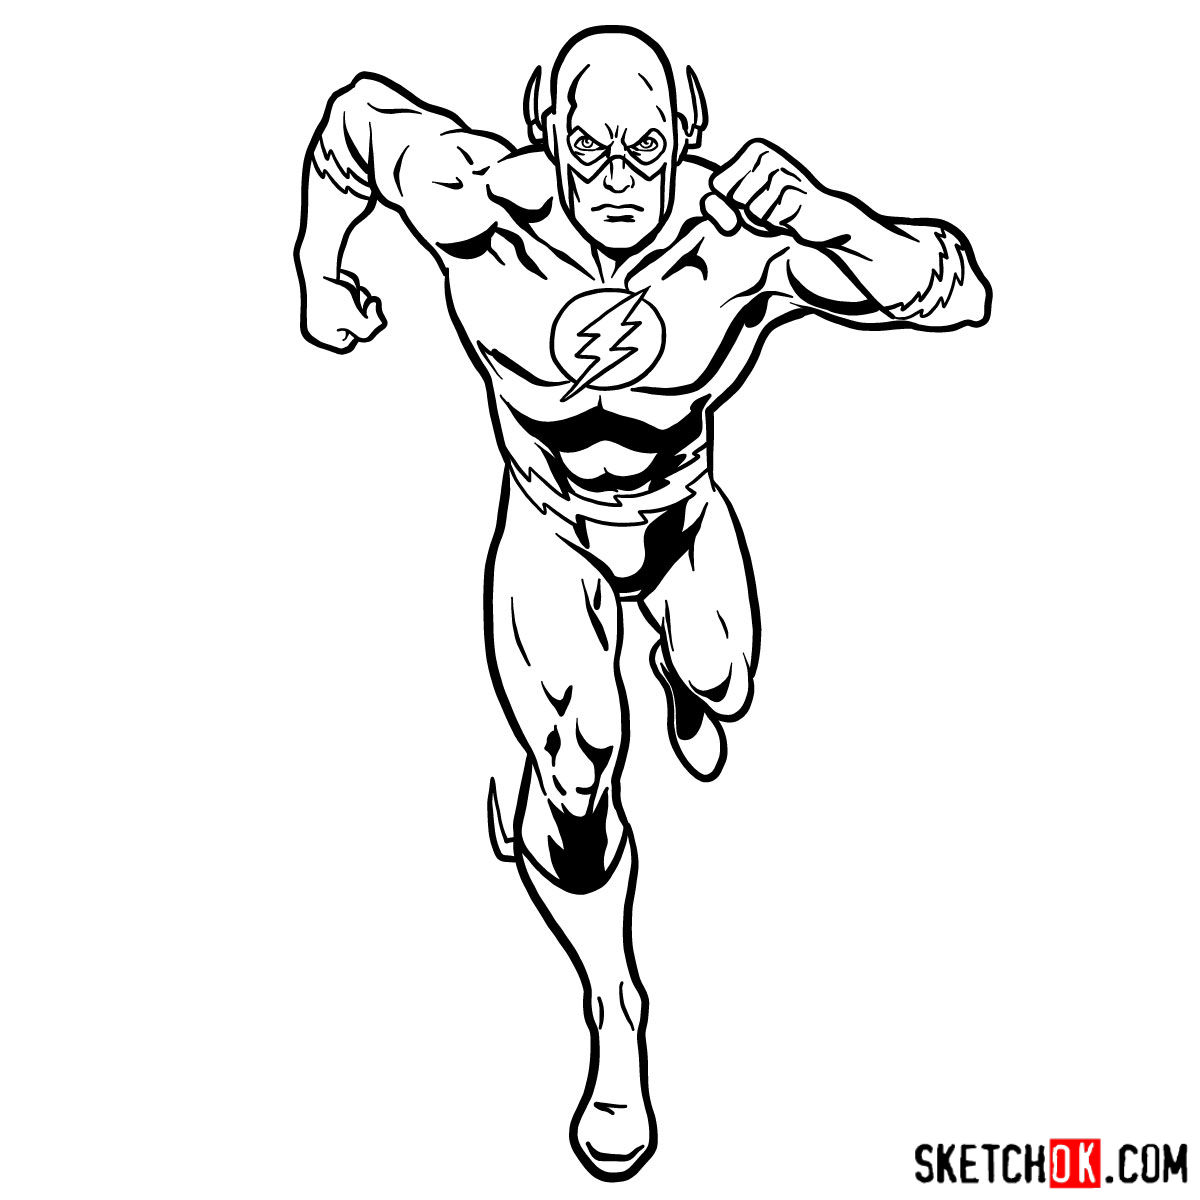 How to draw Flash (Barry Allen) - step 12